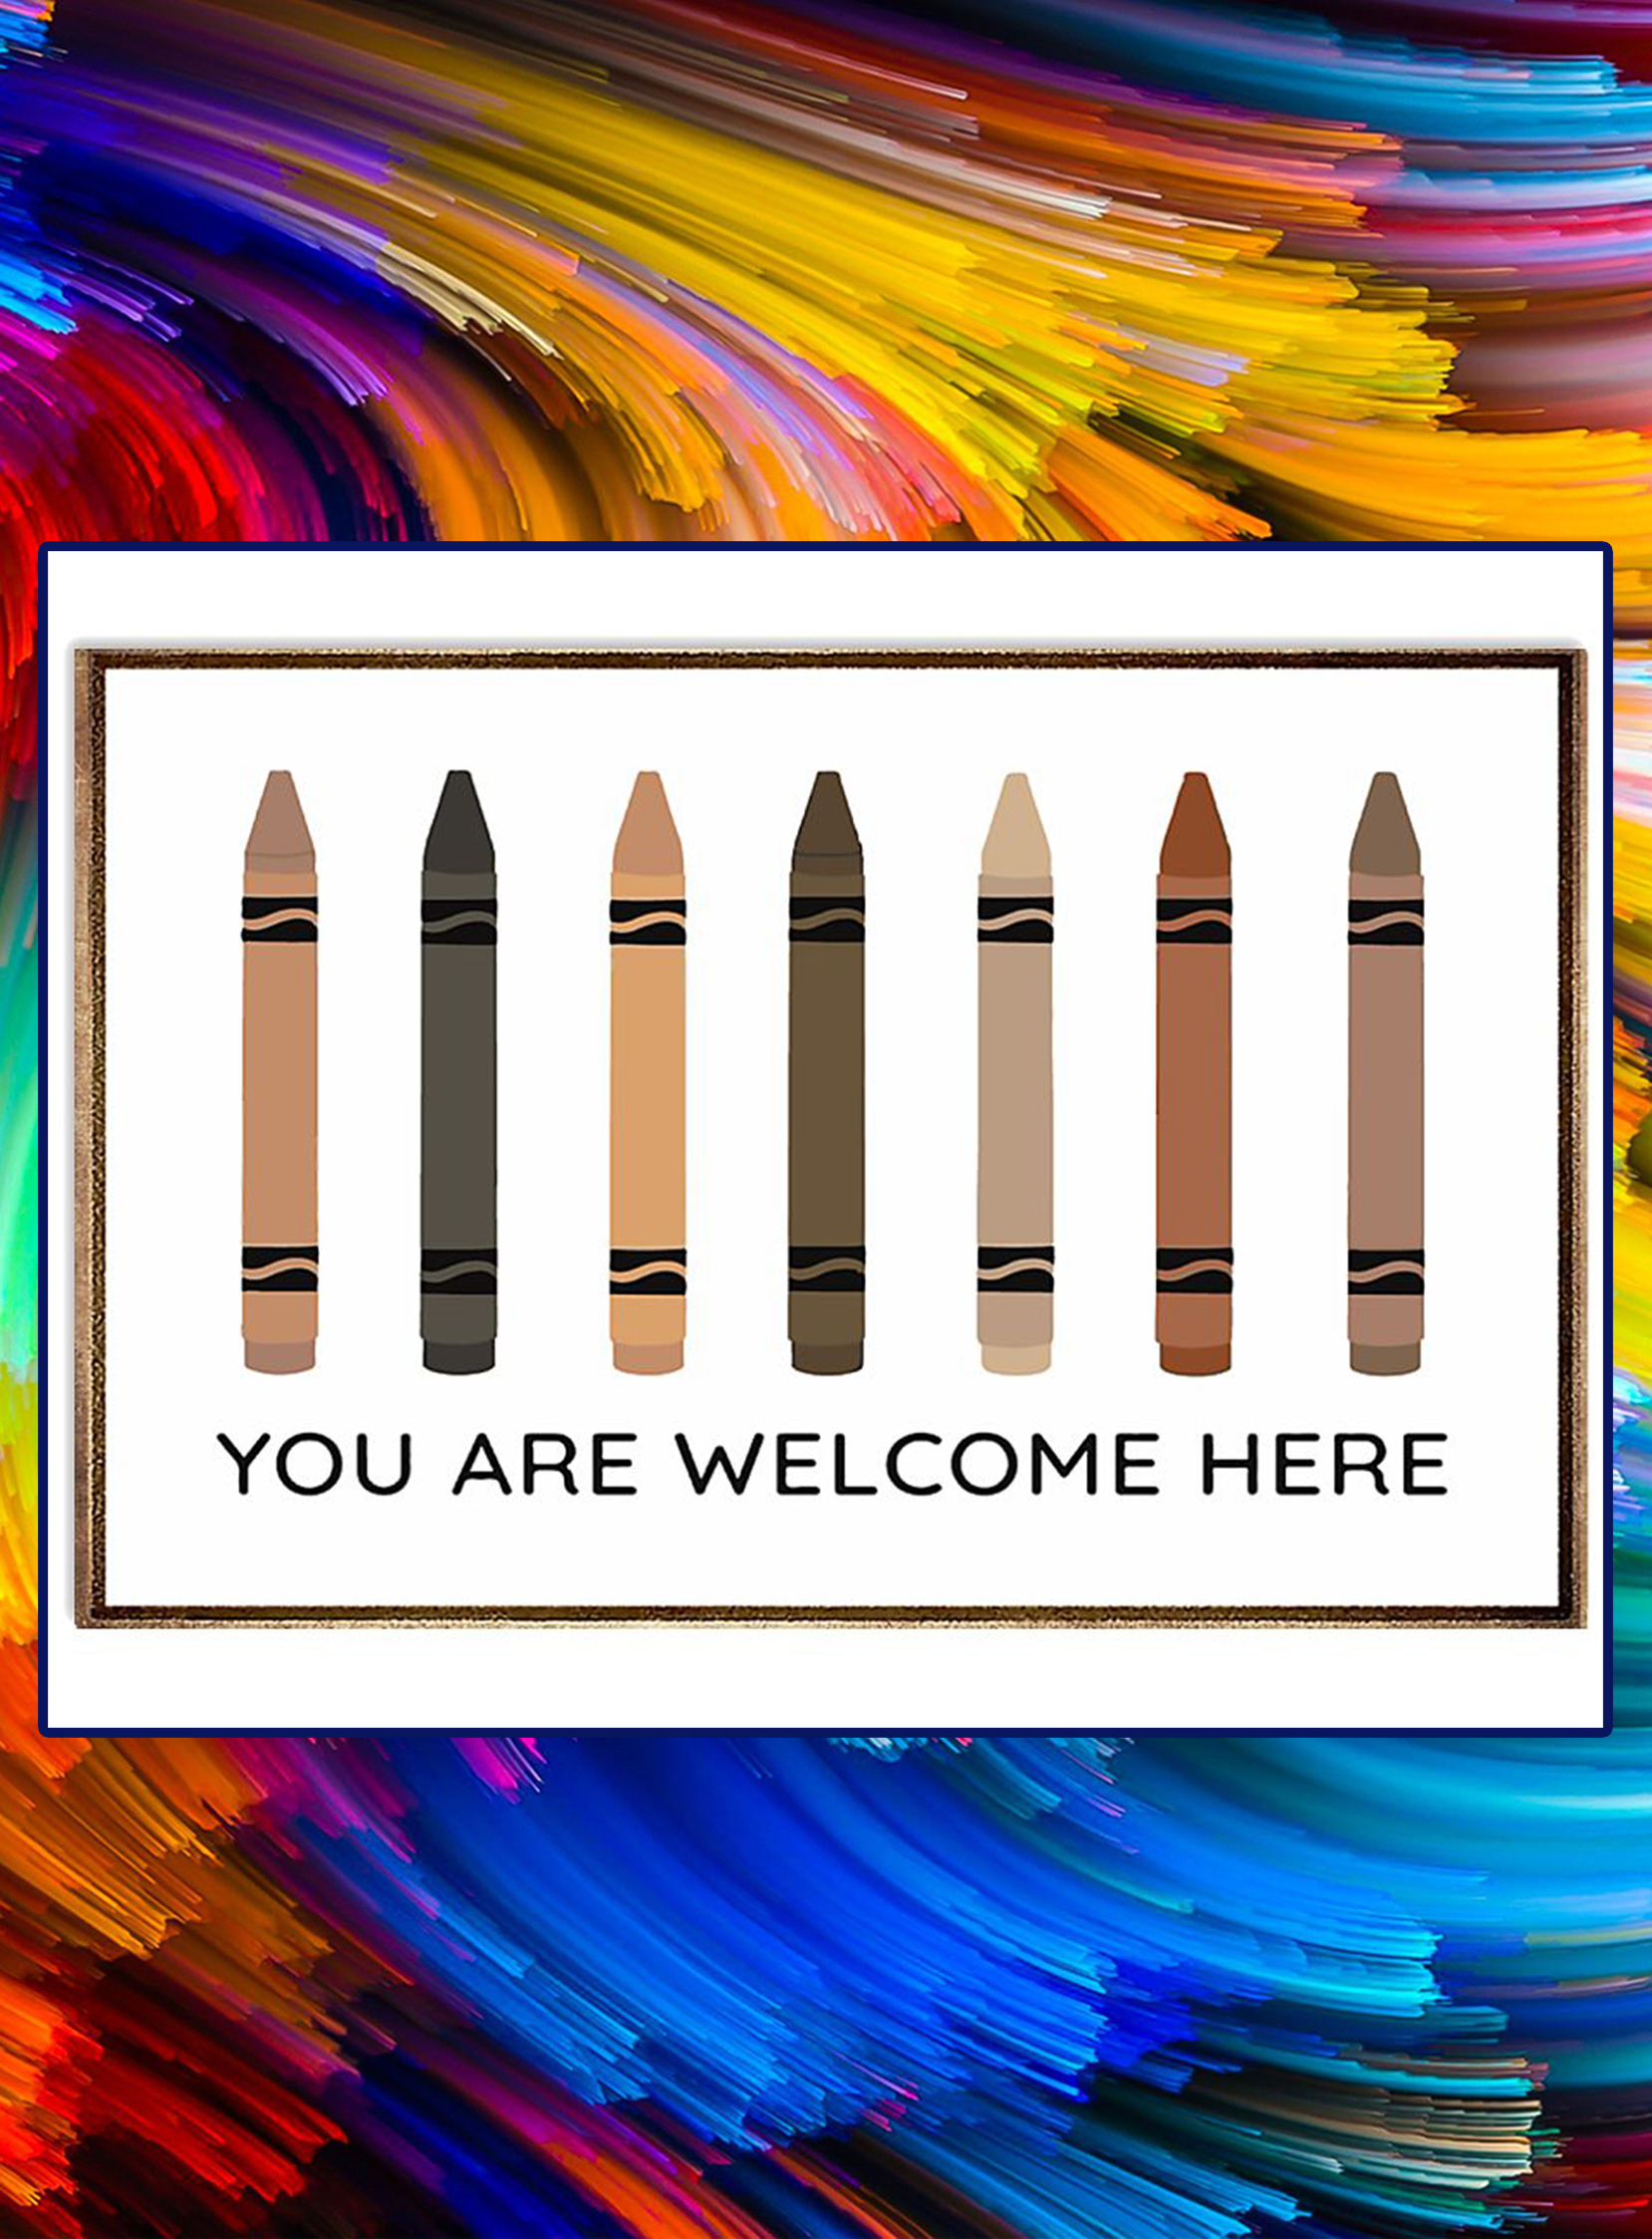 Crayons You are welcome here poster - A3